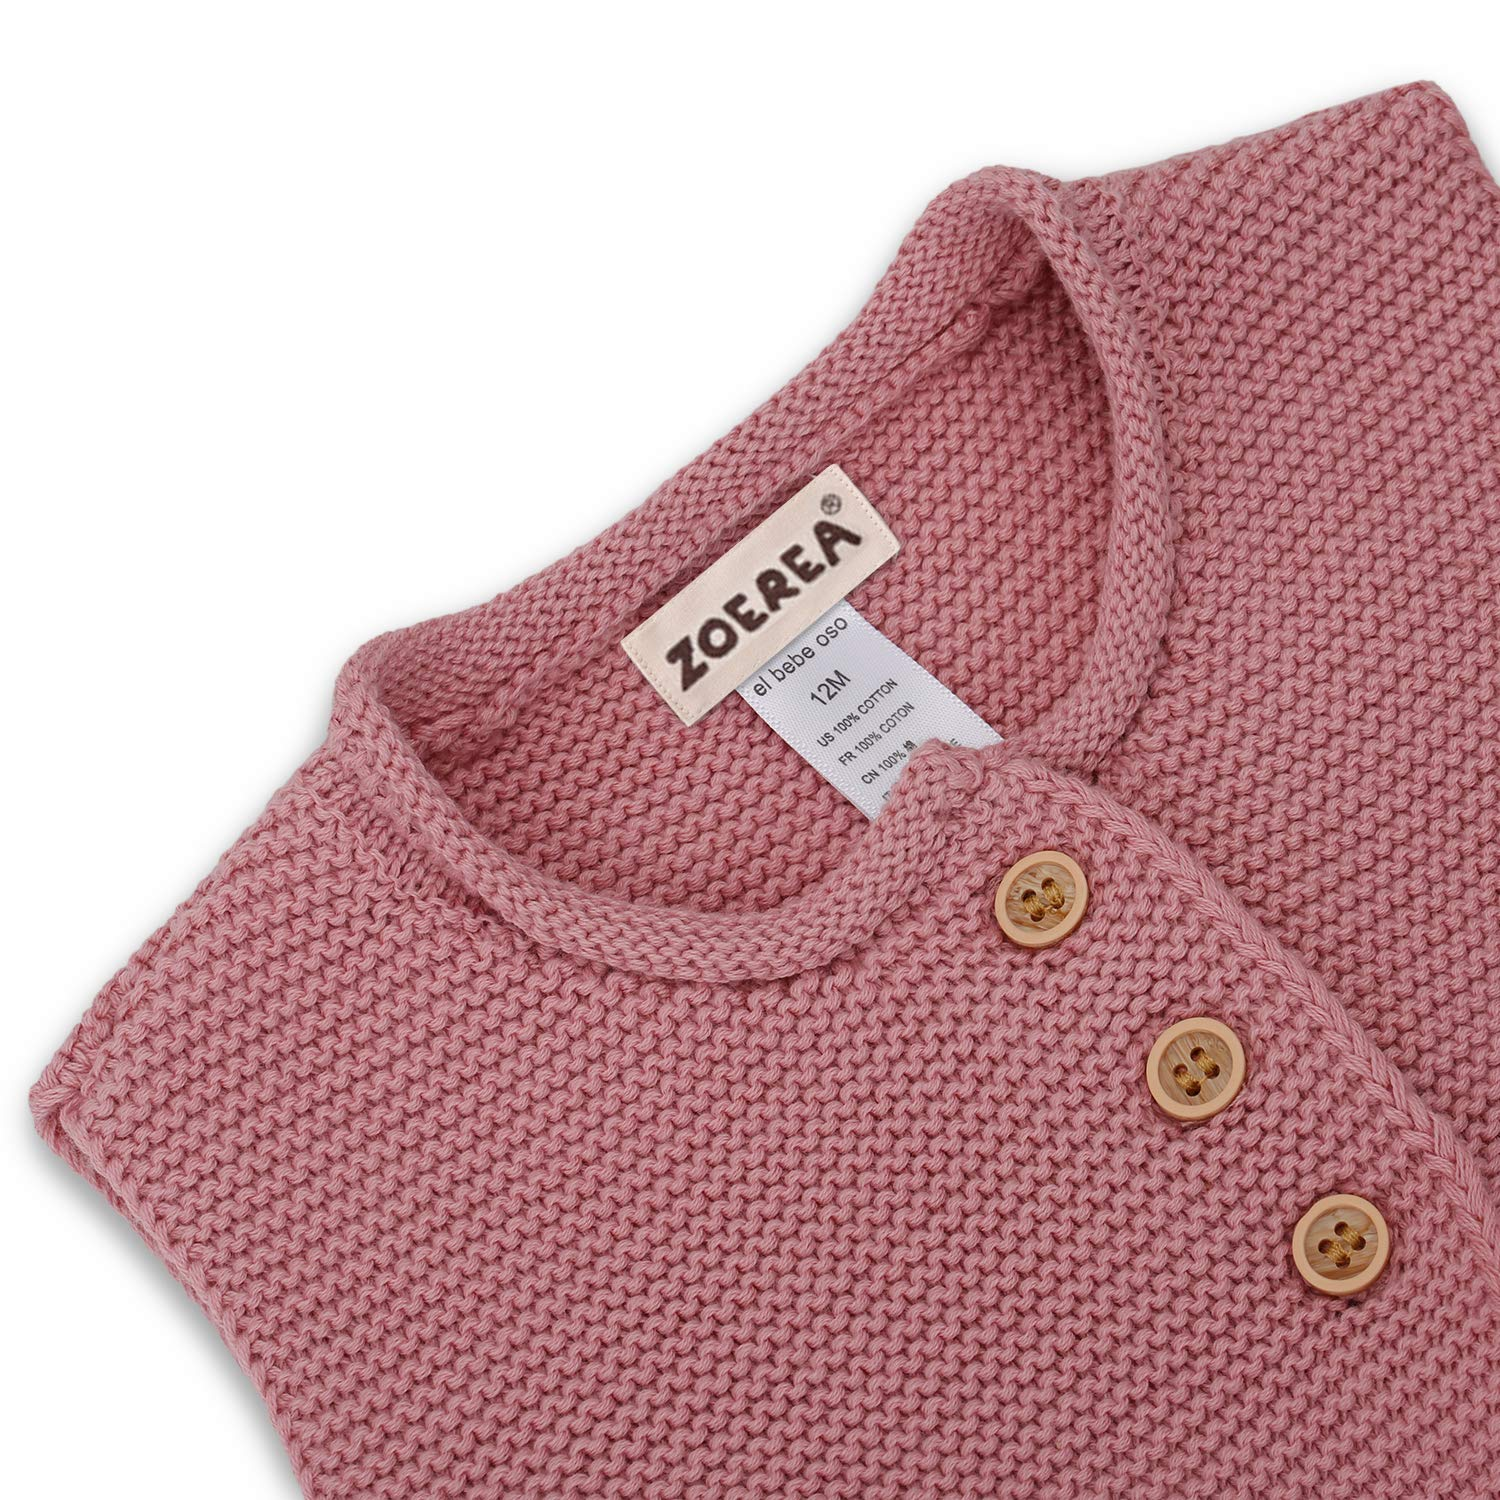 Boys' Baby Clothing Rompers Baby Knitted Sweater Romper 0-18 Months Solid Color Thick Cotton O-neck Autumn Winter Infant Boy Girl Baby Clothing Easy To Repair